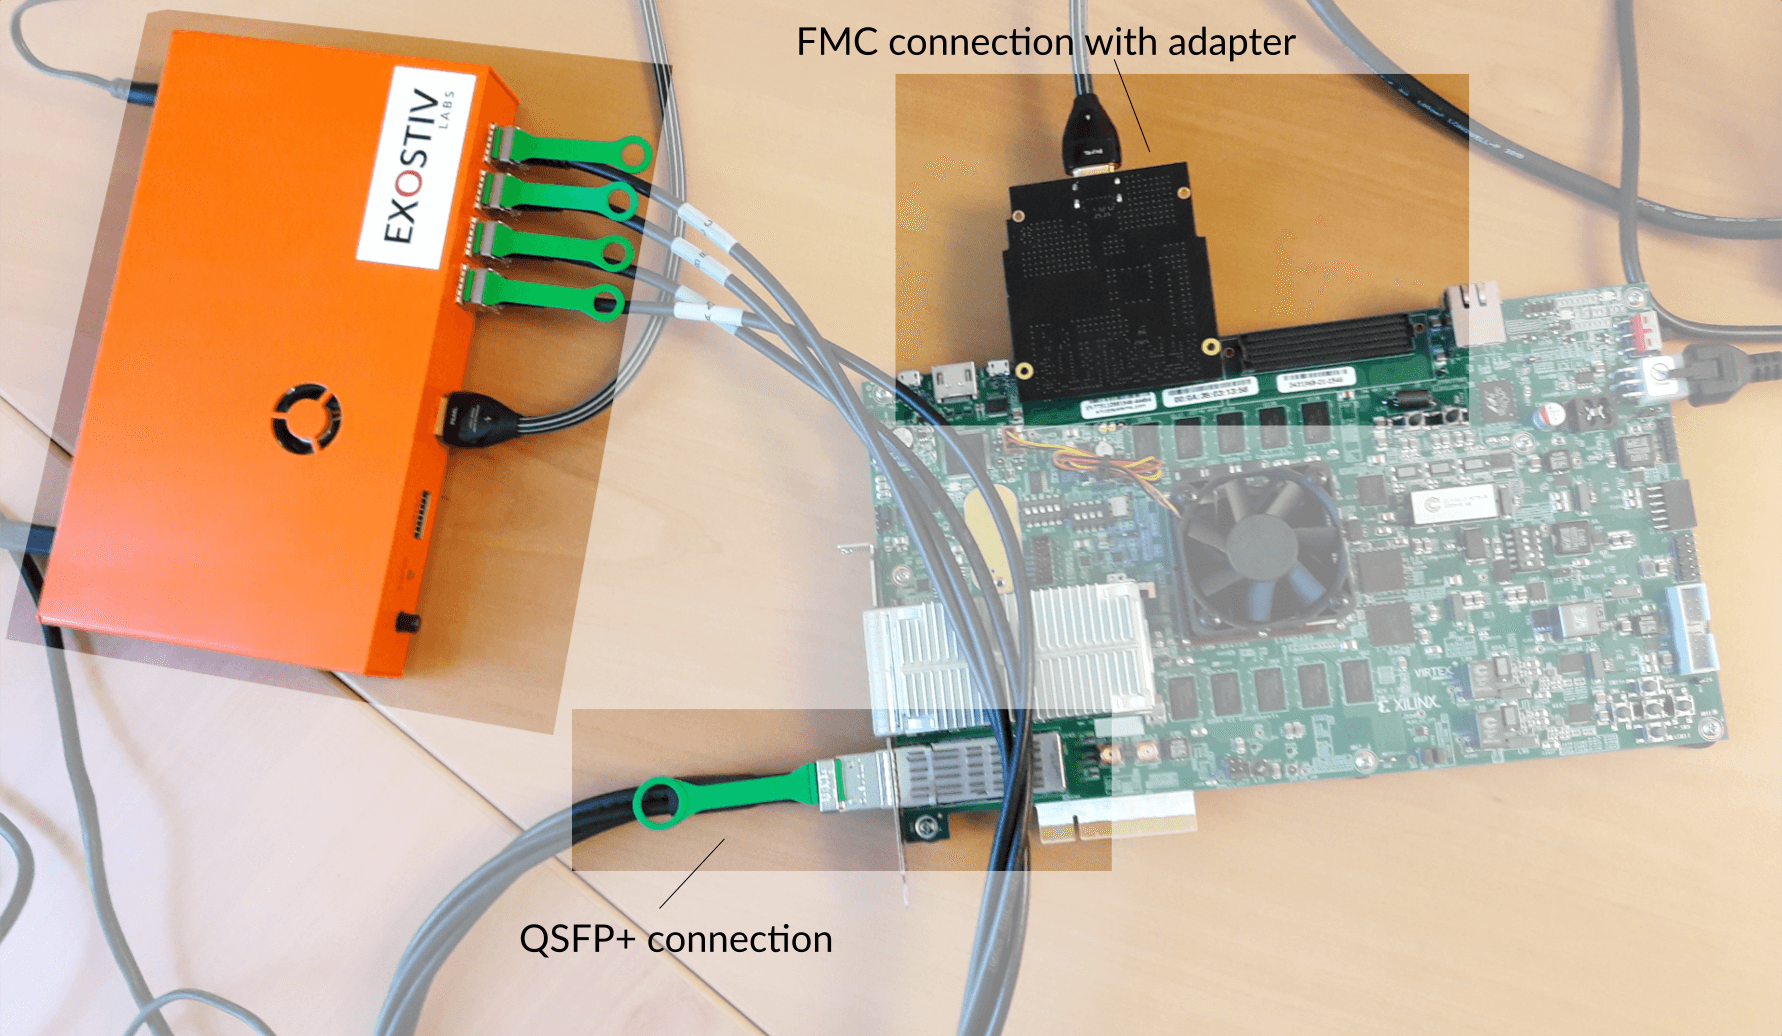 EXOSTIV connected to Xilinx VCU108 board on QSFP+ or FMC HPC connector